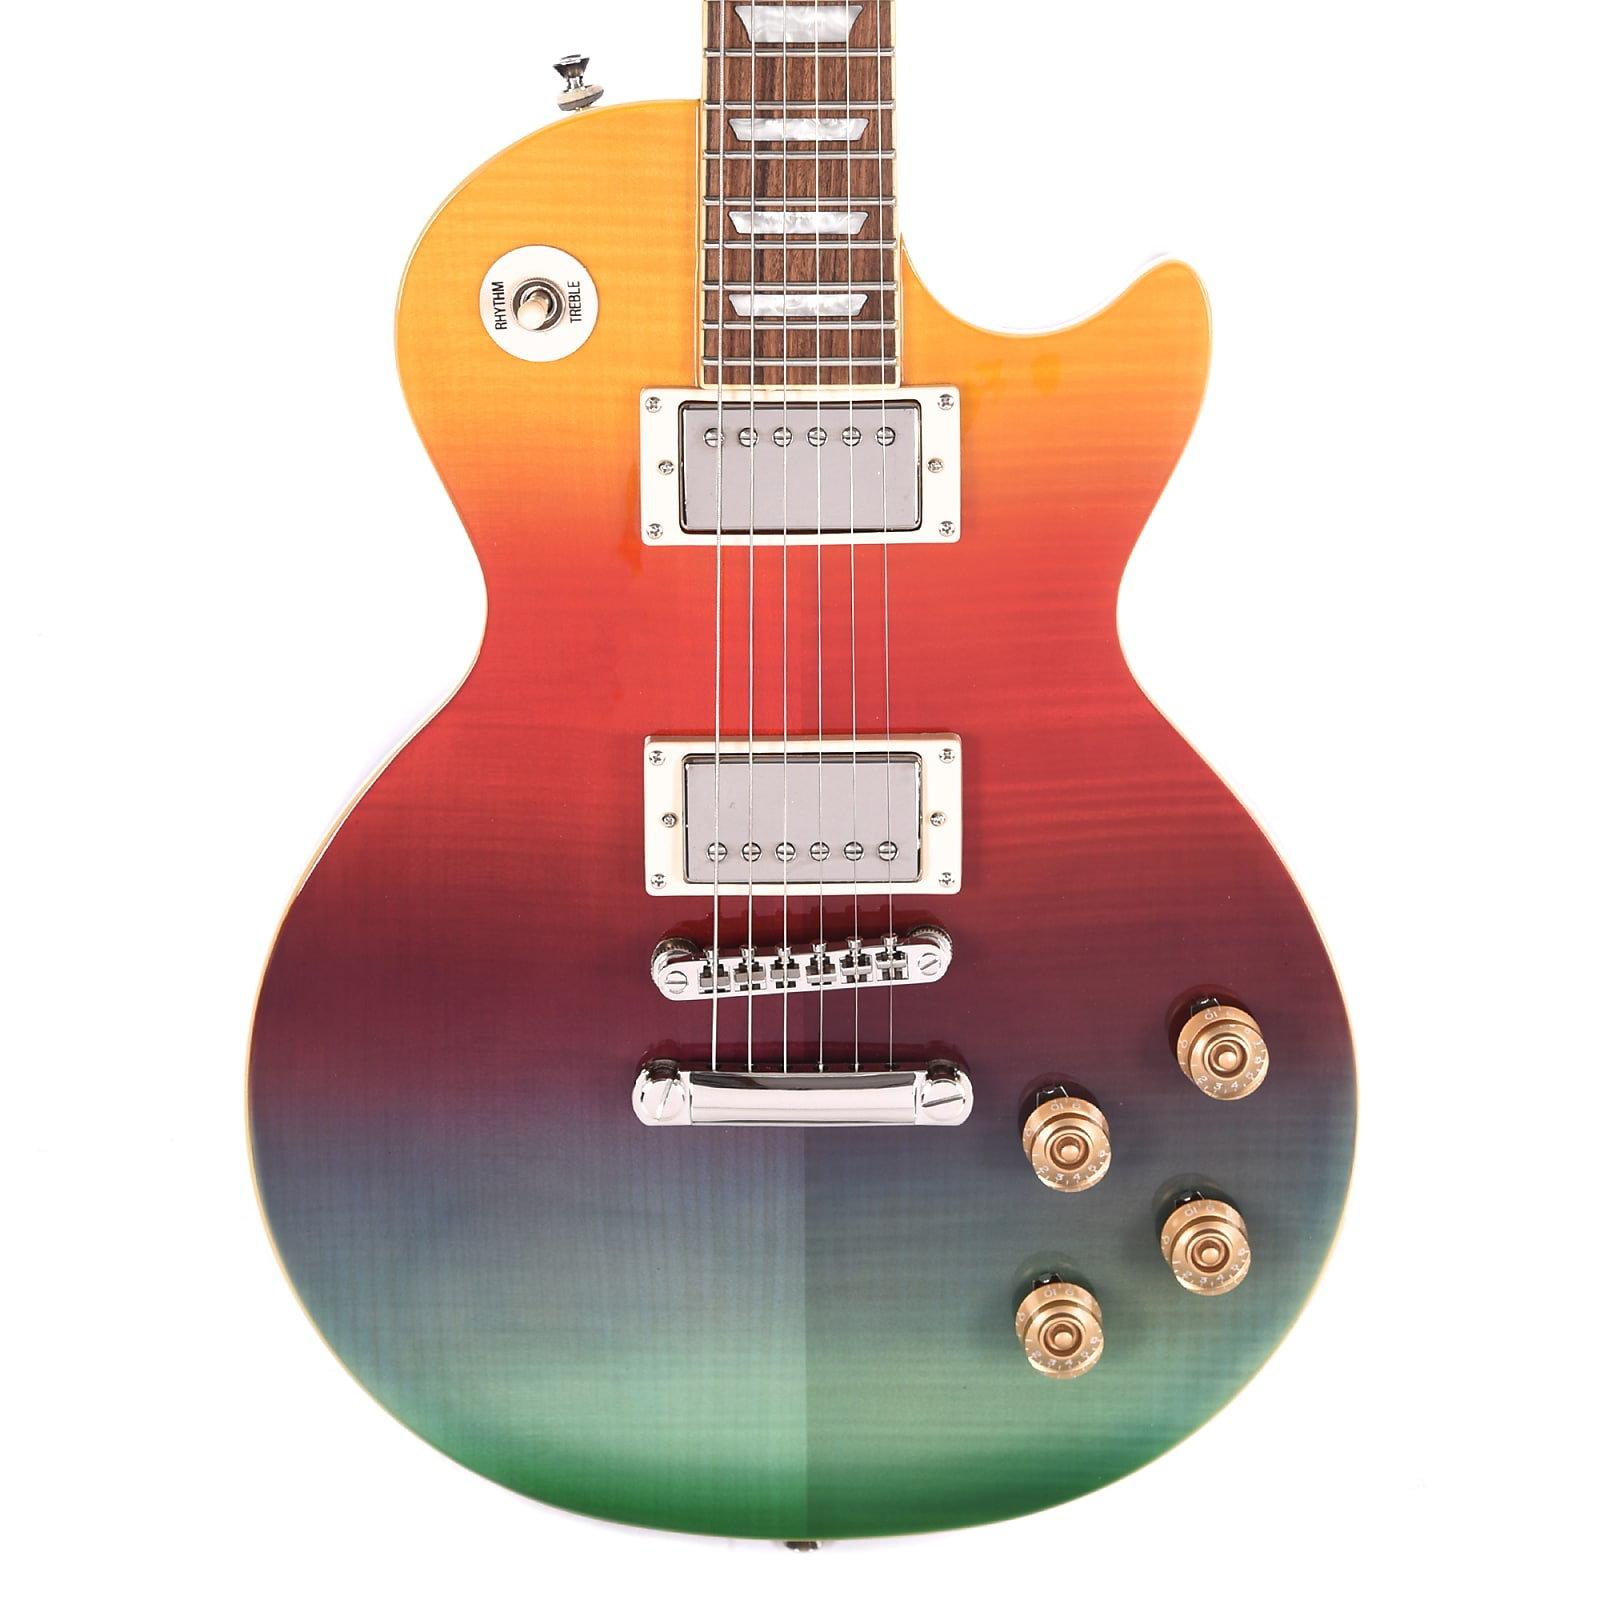 epiphone les paul tribute prizm outfit rainbow w gibson 39 57 classics series parallel. Black Bedroom Furniture Sets. Home Design Ideas